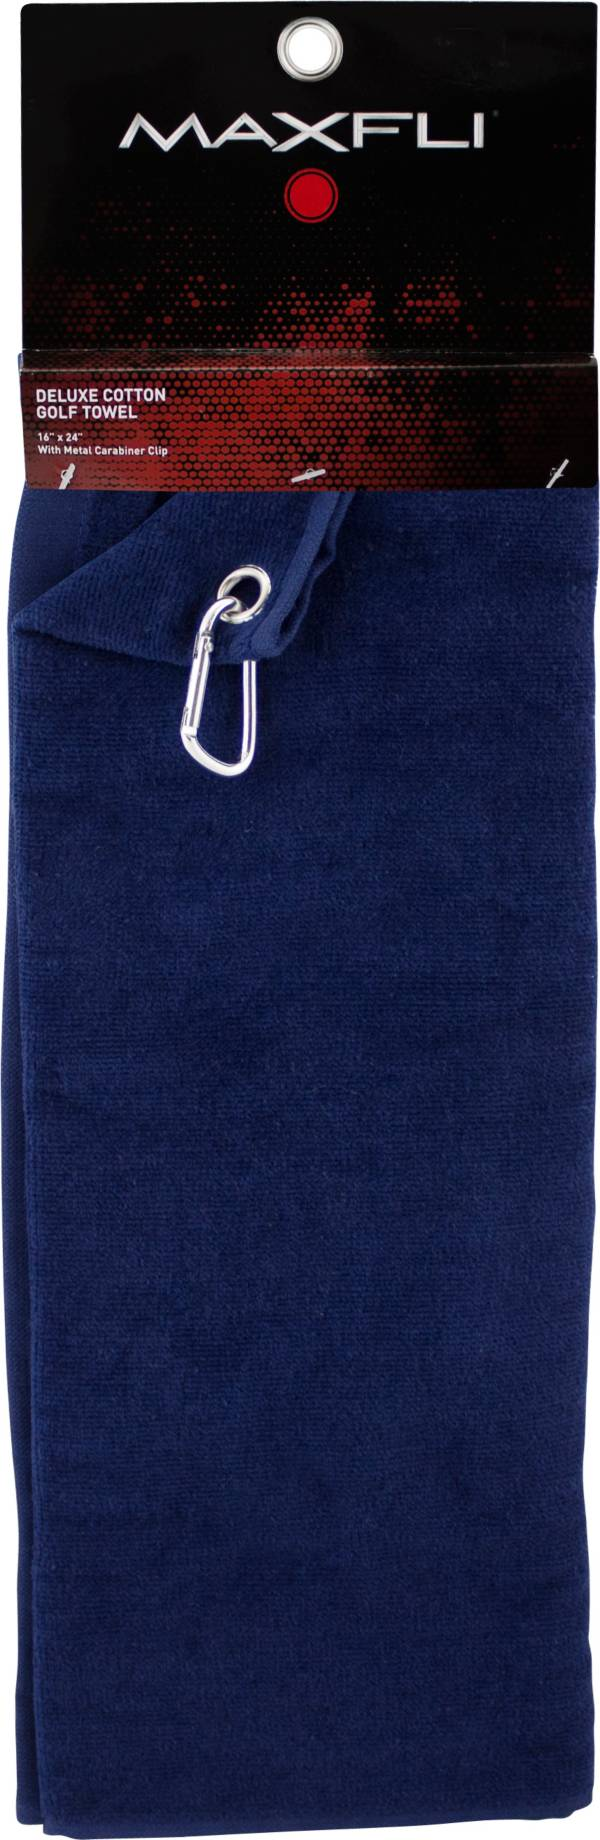 Maxfli Deluxe Cotton Golf Towel product image